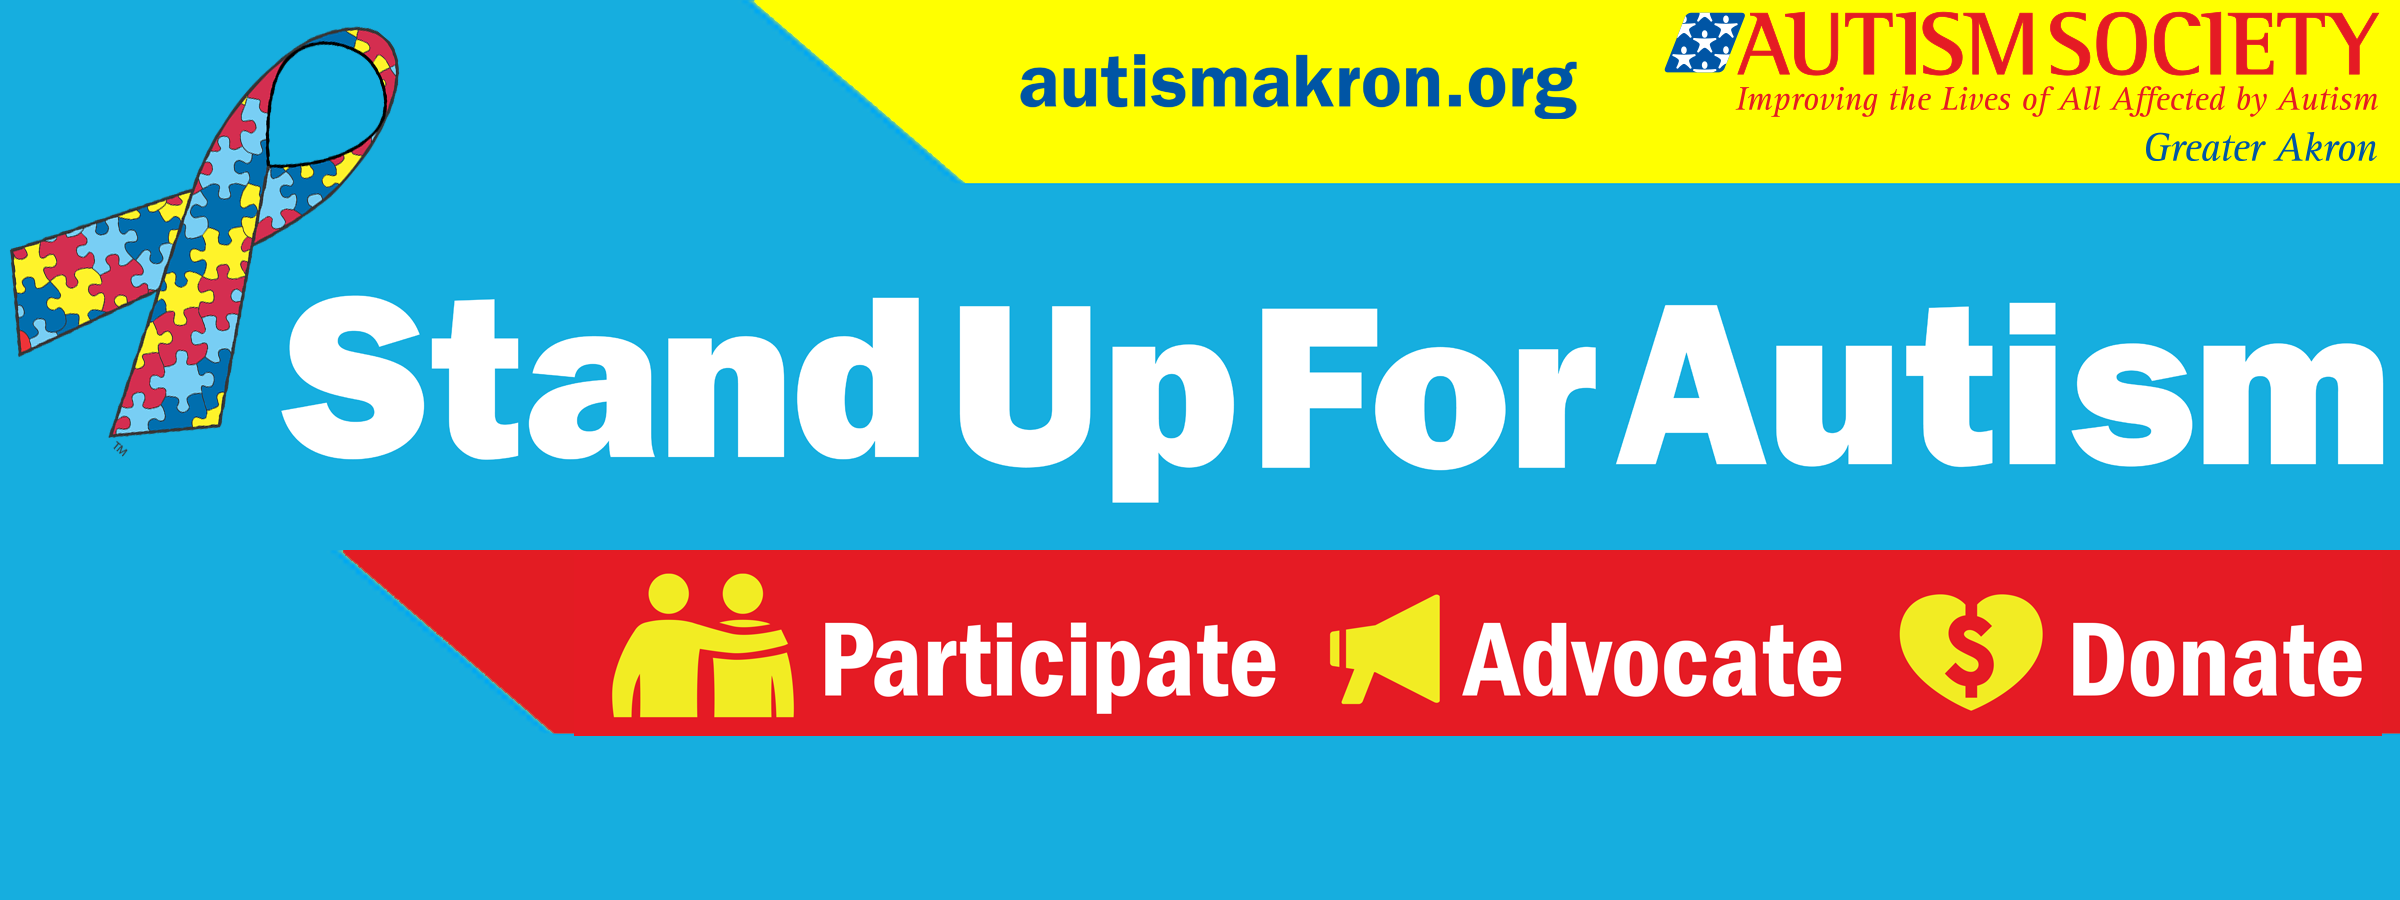 stand up for autism FB